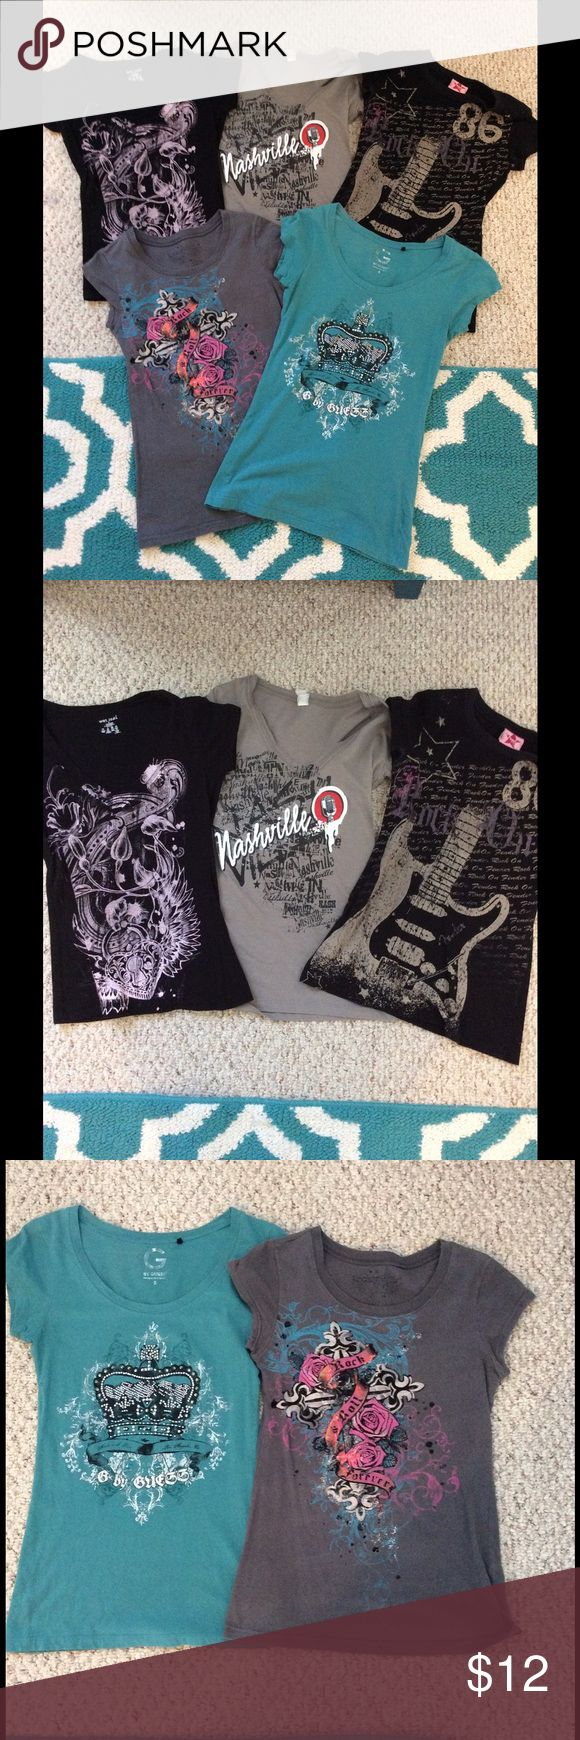 Lot of 5 XS Cotton T Shirts 5 XS tee shirts - tags says small but they have been worn and shrunk a little from drying. one is a guess t shirt, one is wet seal, one rock n roll. All in fair to good condition. Tops Tees - Short Sleeve